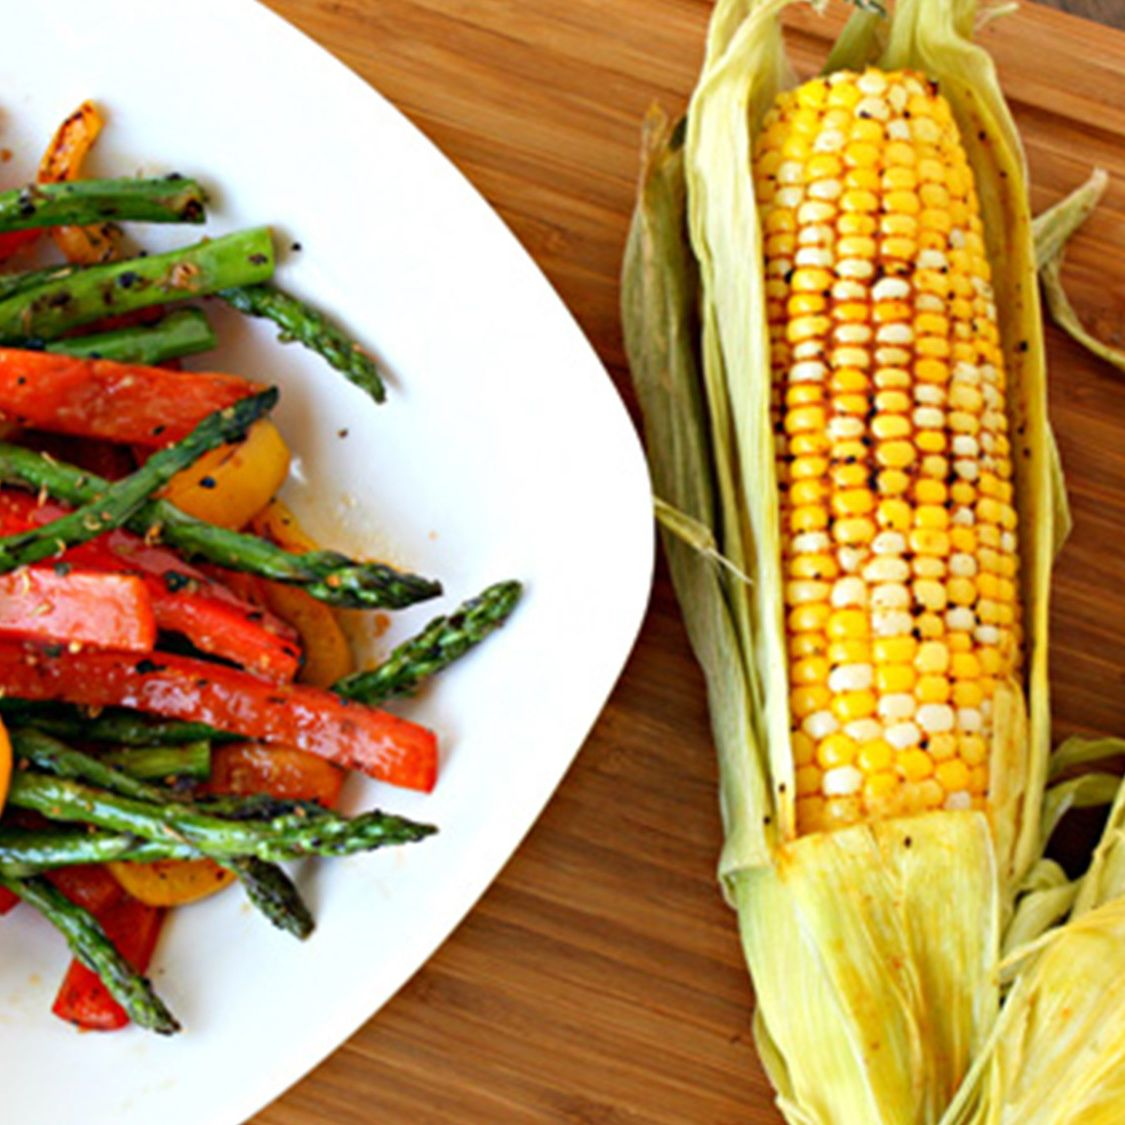 stubbs_spice_rubbed_grilled_veggies_with_roasted_corn.jpg